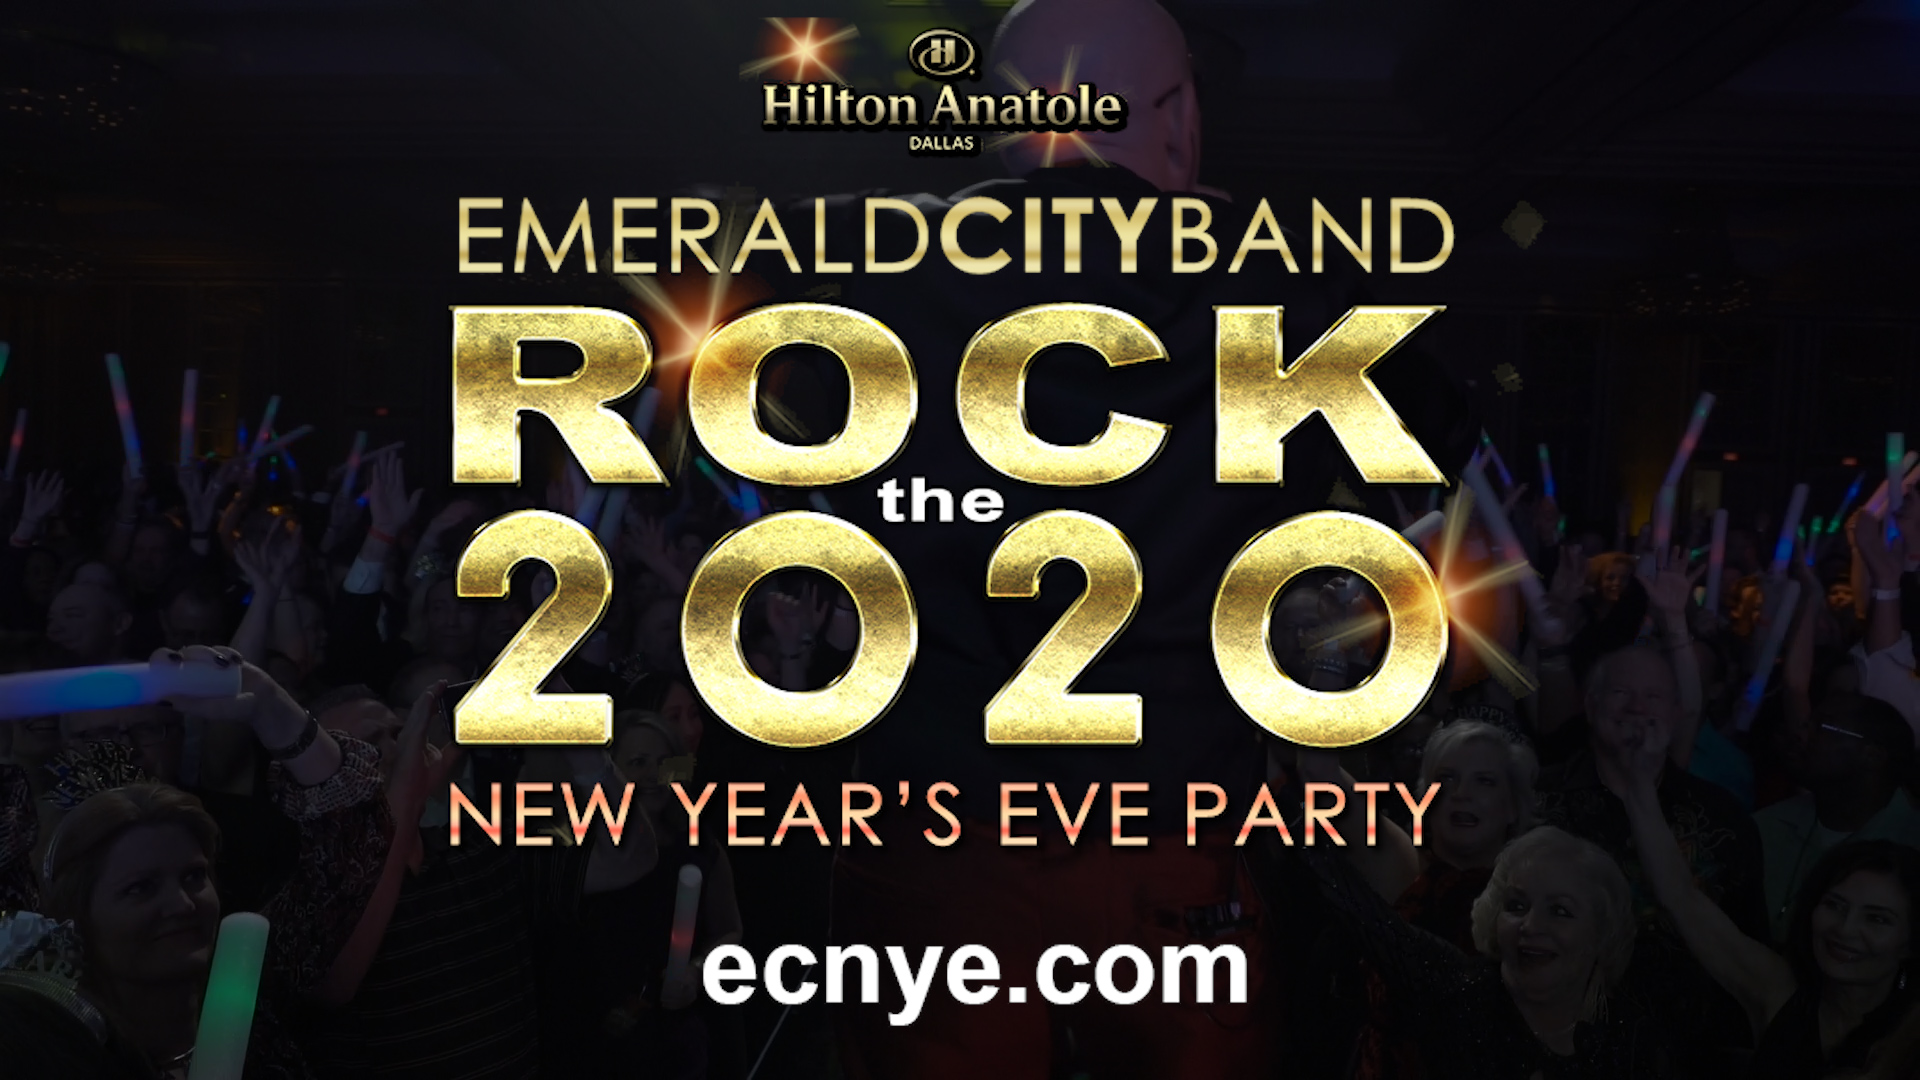 #1 New Year's Eve Party in Dallas - Emerald City Band NYE Dallas 2020